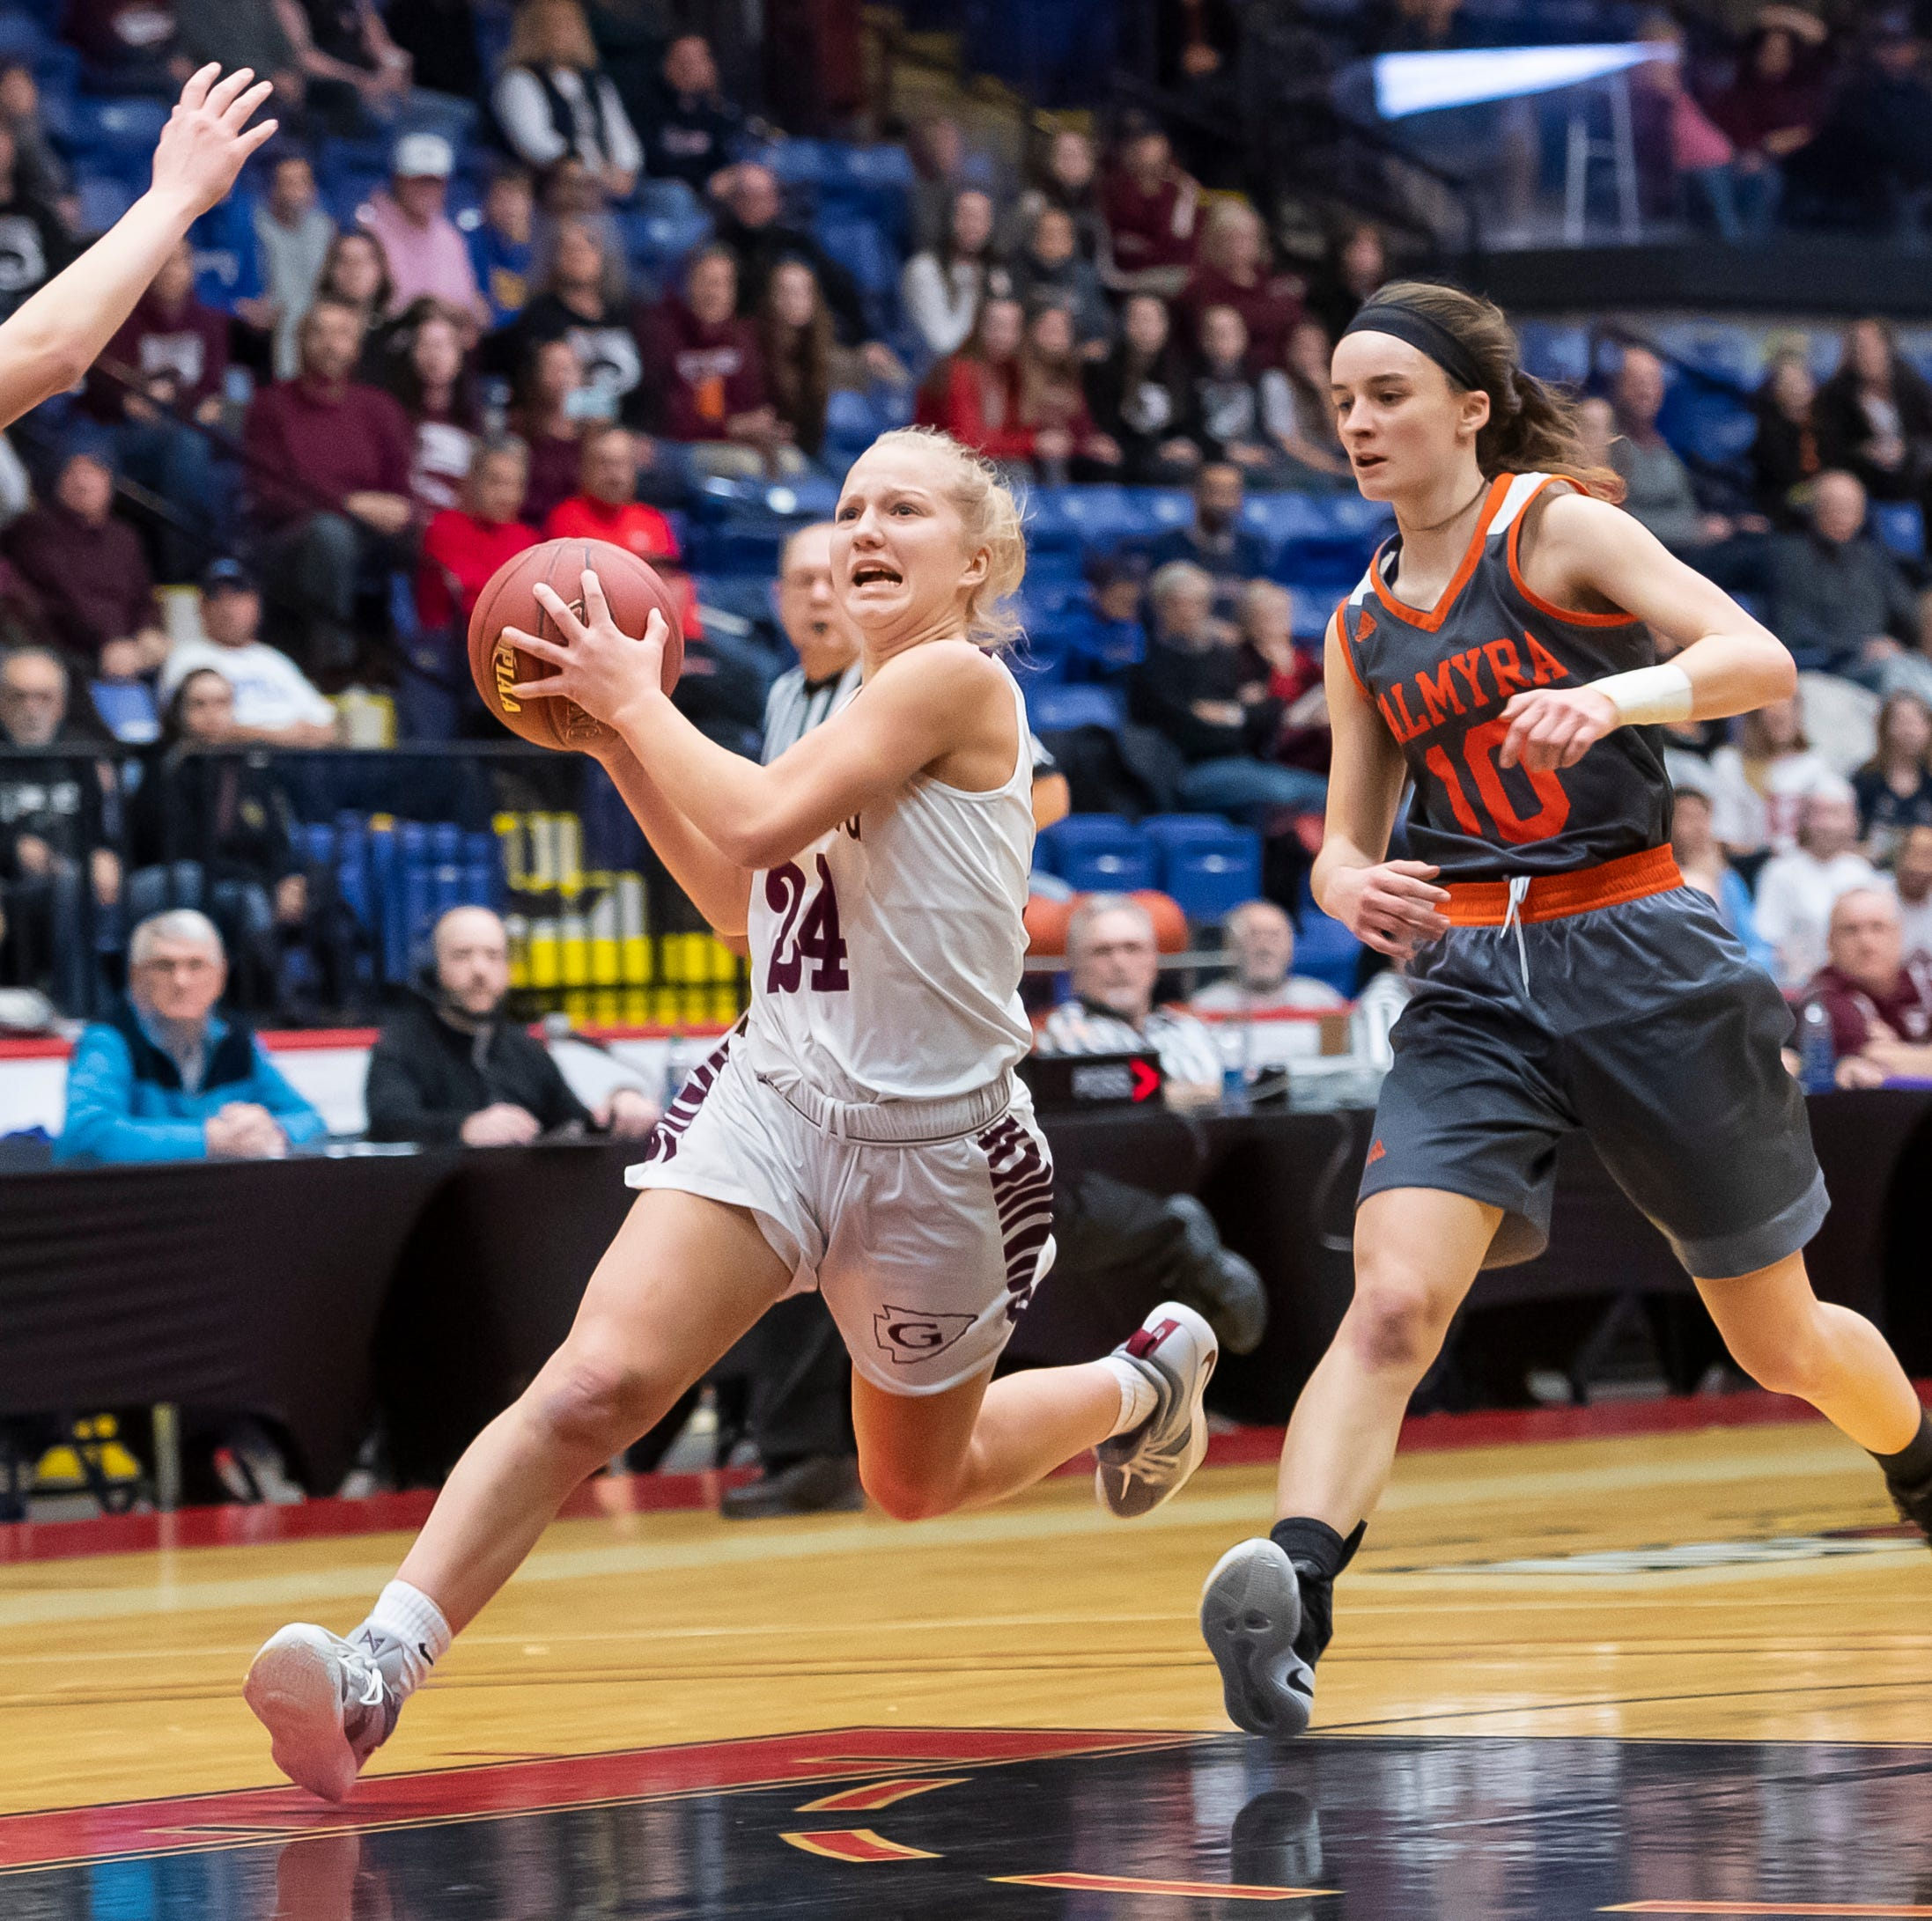 Gettysburg girls fall in District 3 5A title game, but championship experience 'invaluable'